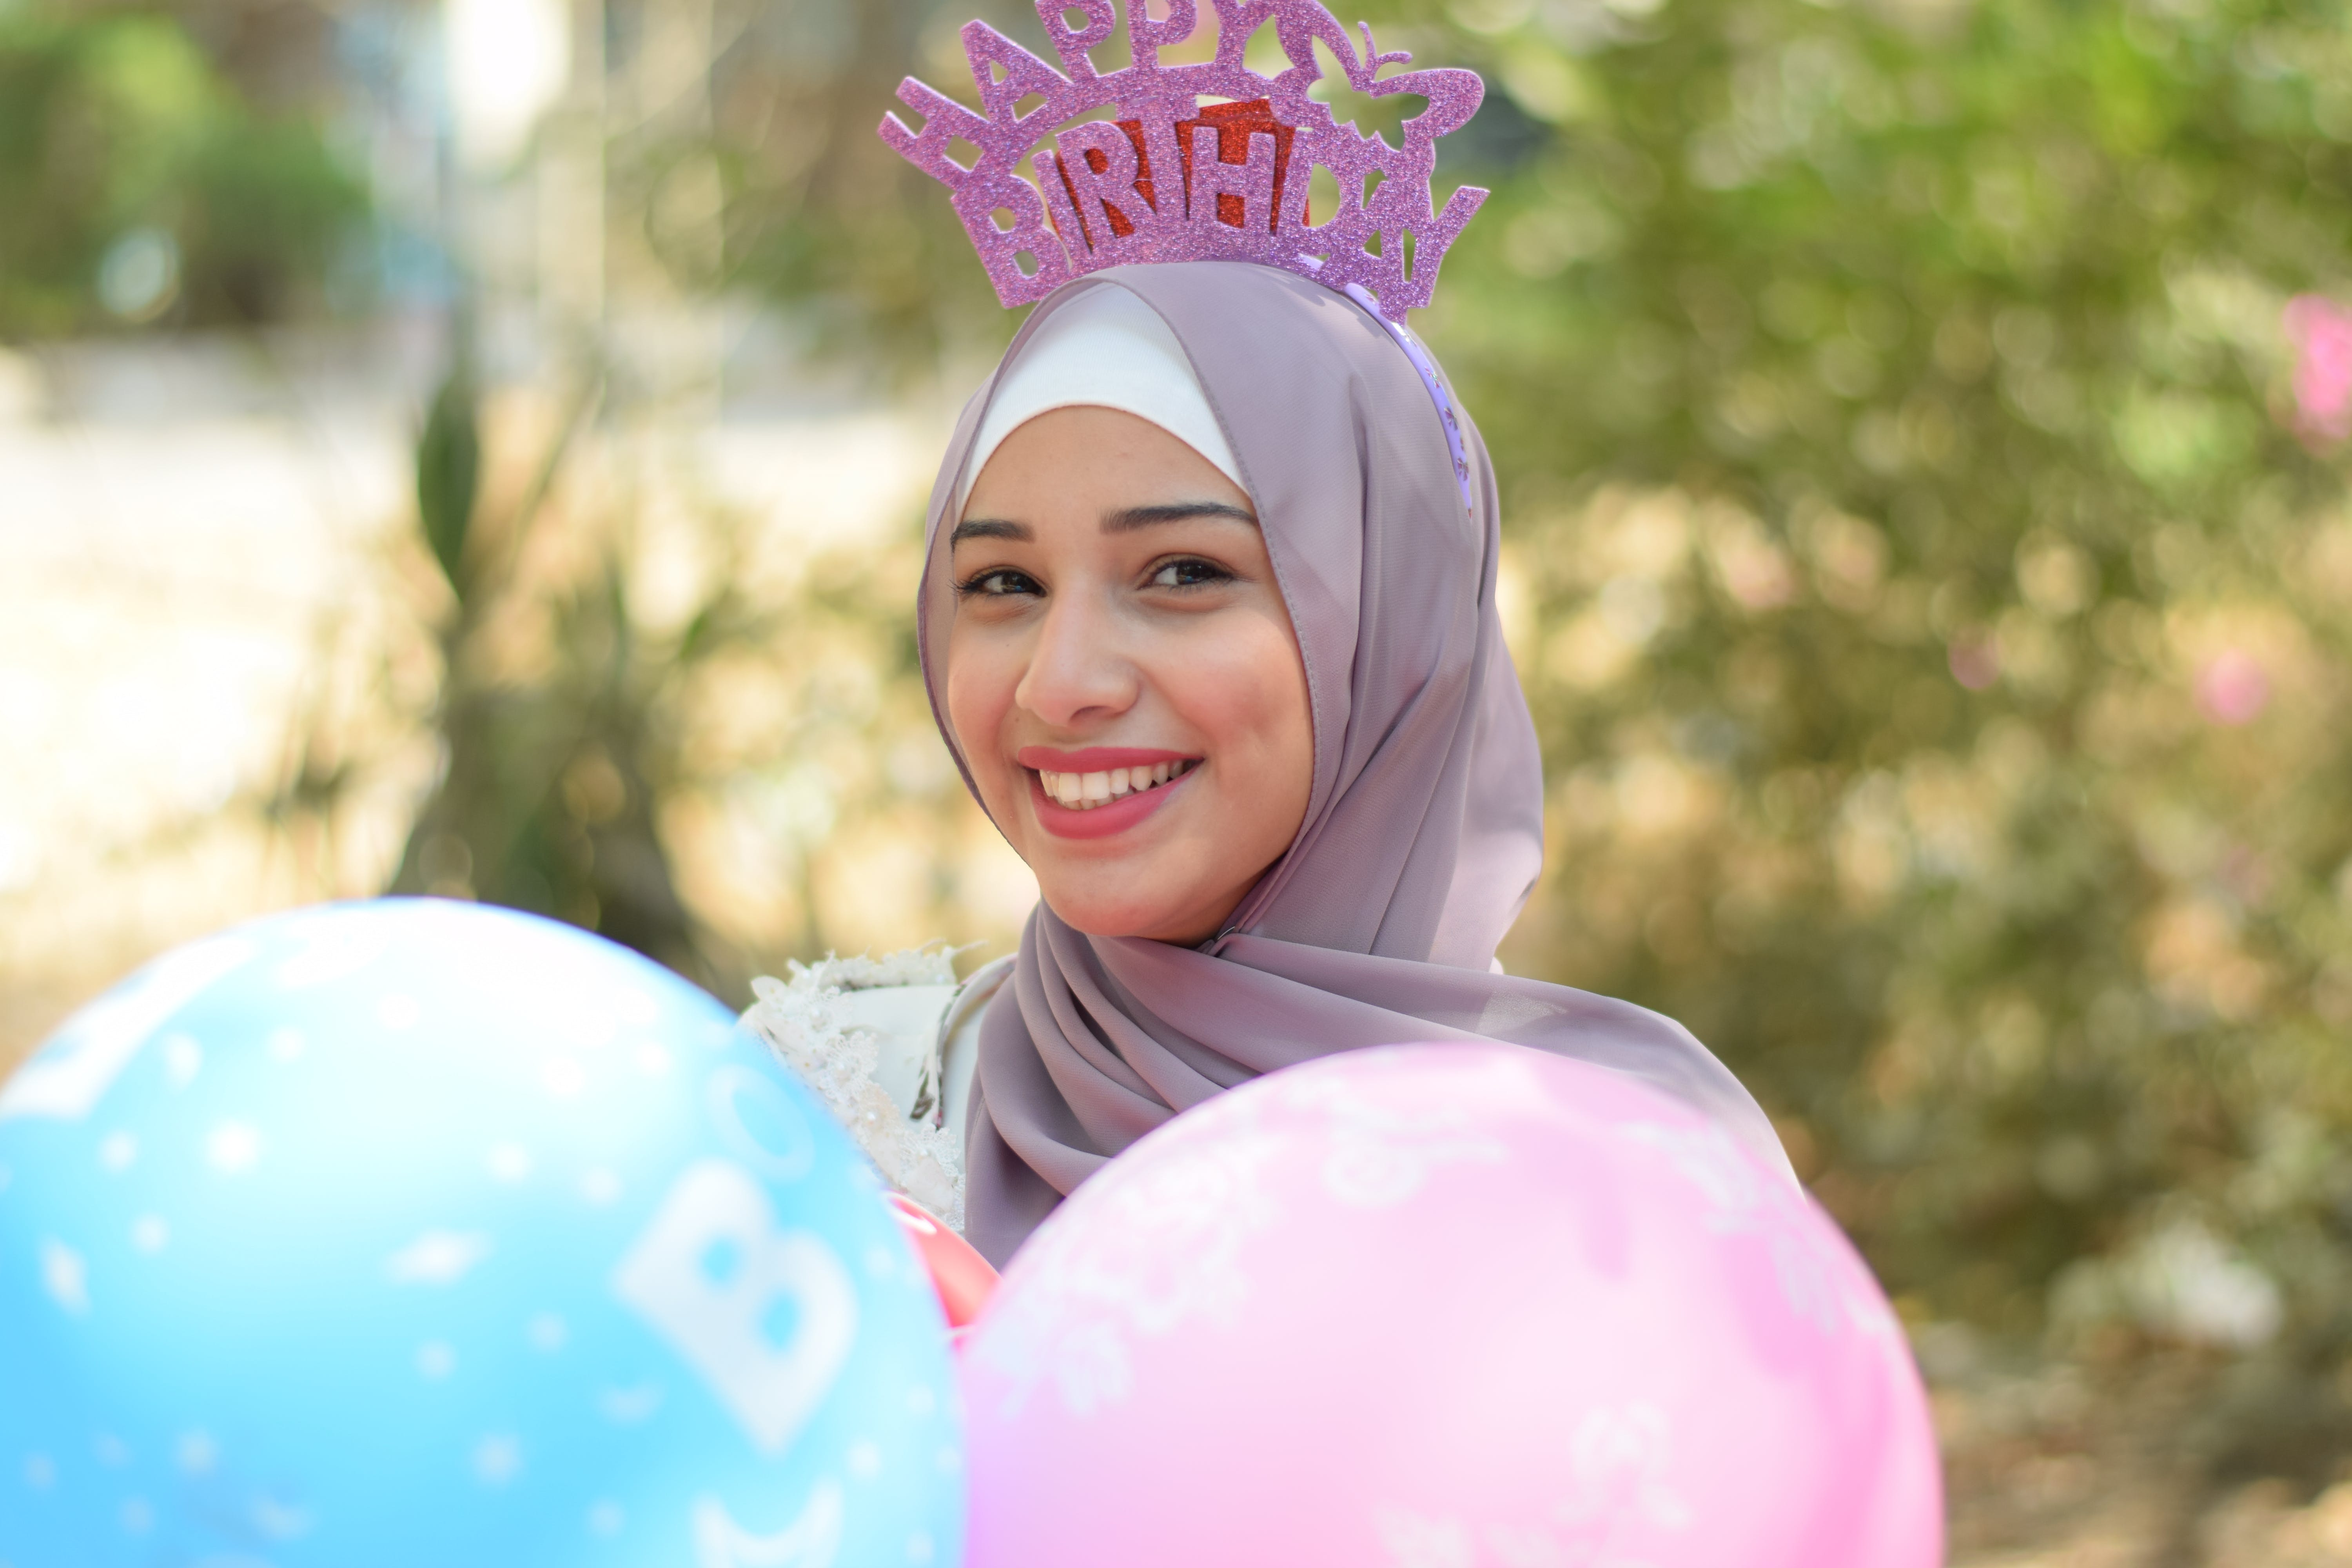 Smiling Woman Wearing Grey Hijab Headscarf and Holding Pink and Blue Balloons